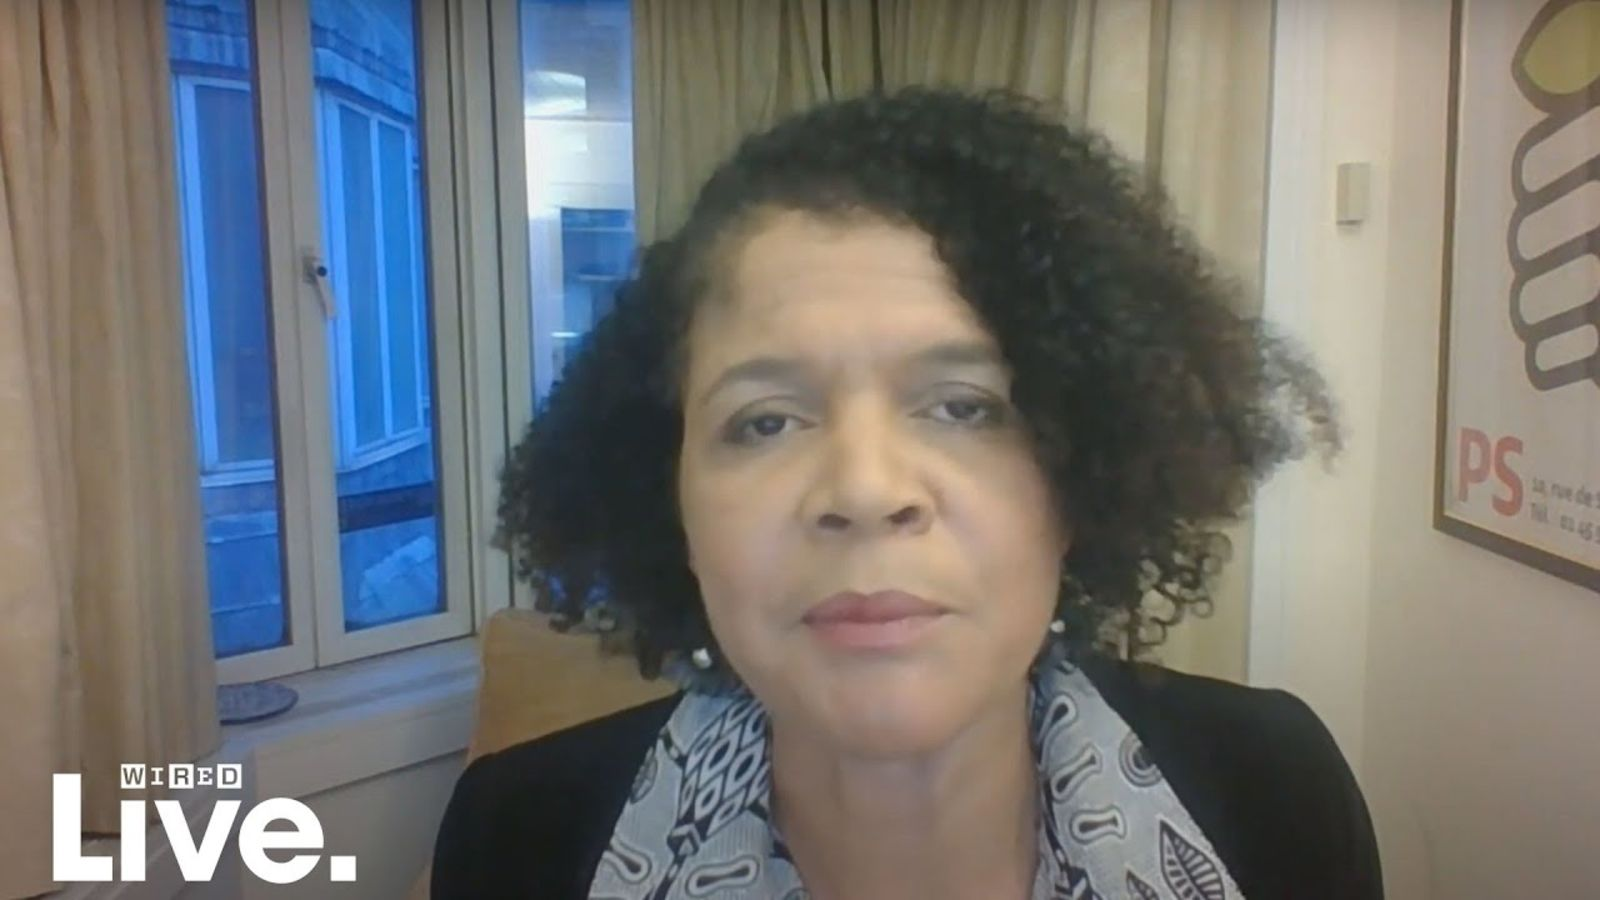 How we can build a better internet with Labour's Chi Onwurah | WIRED Live